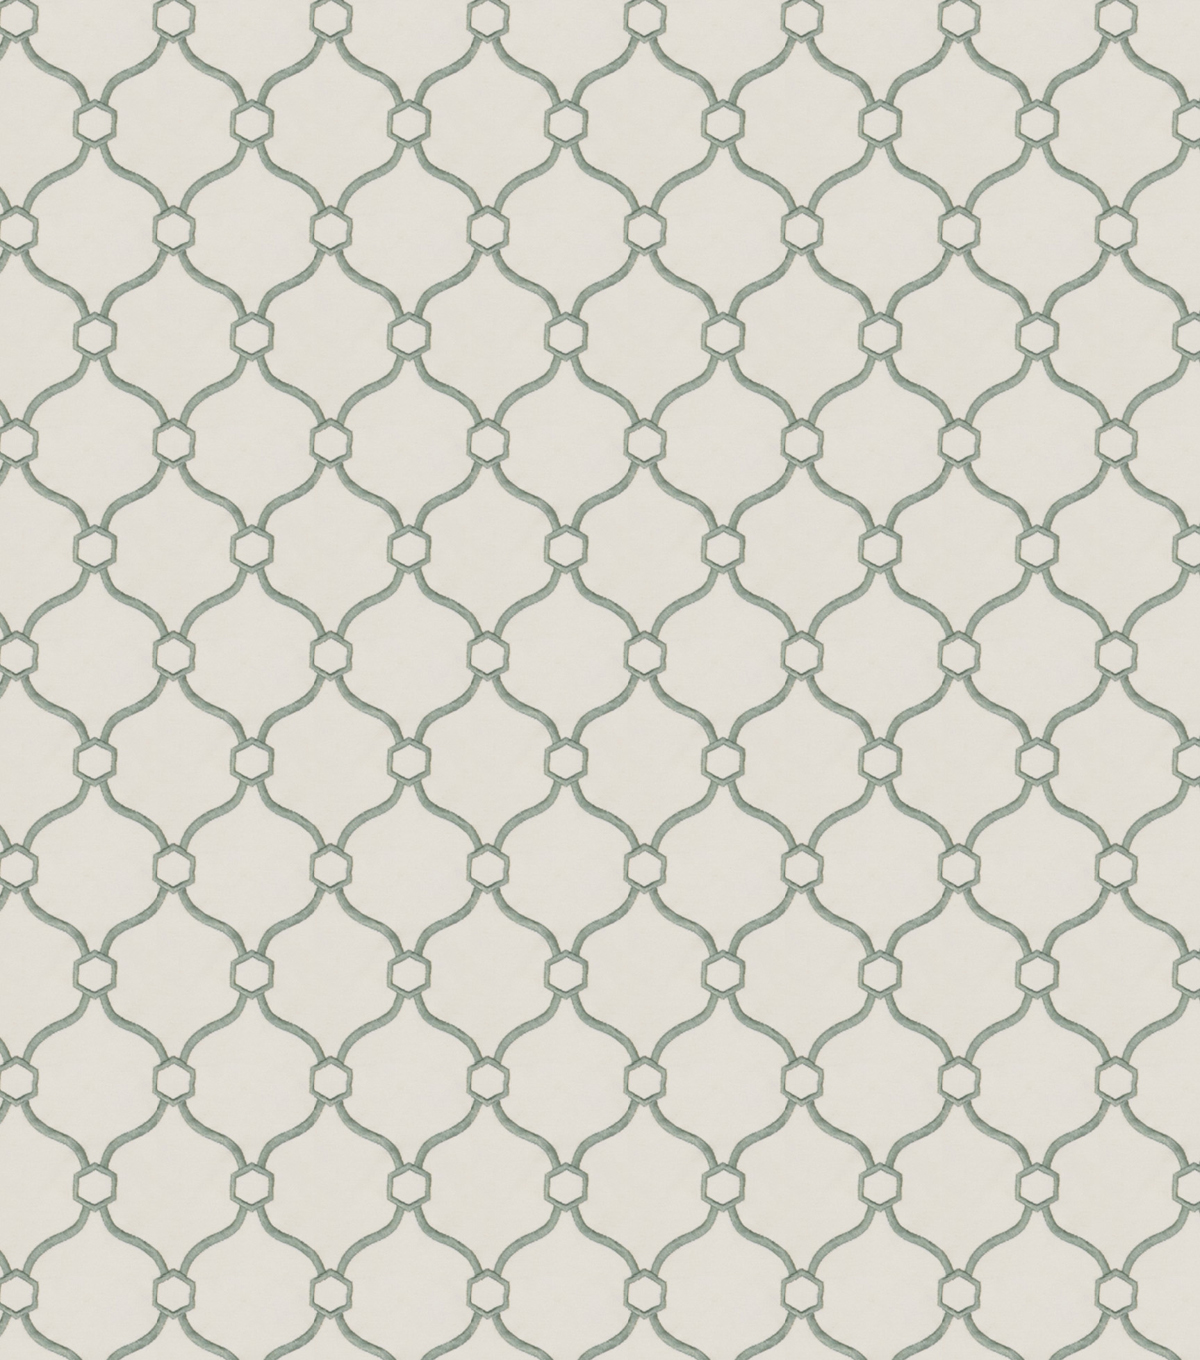 Eaton Square Lightweight Decor Fabric 53\u0022-Text Book/Spa